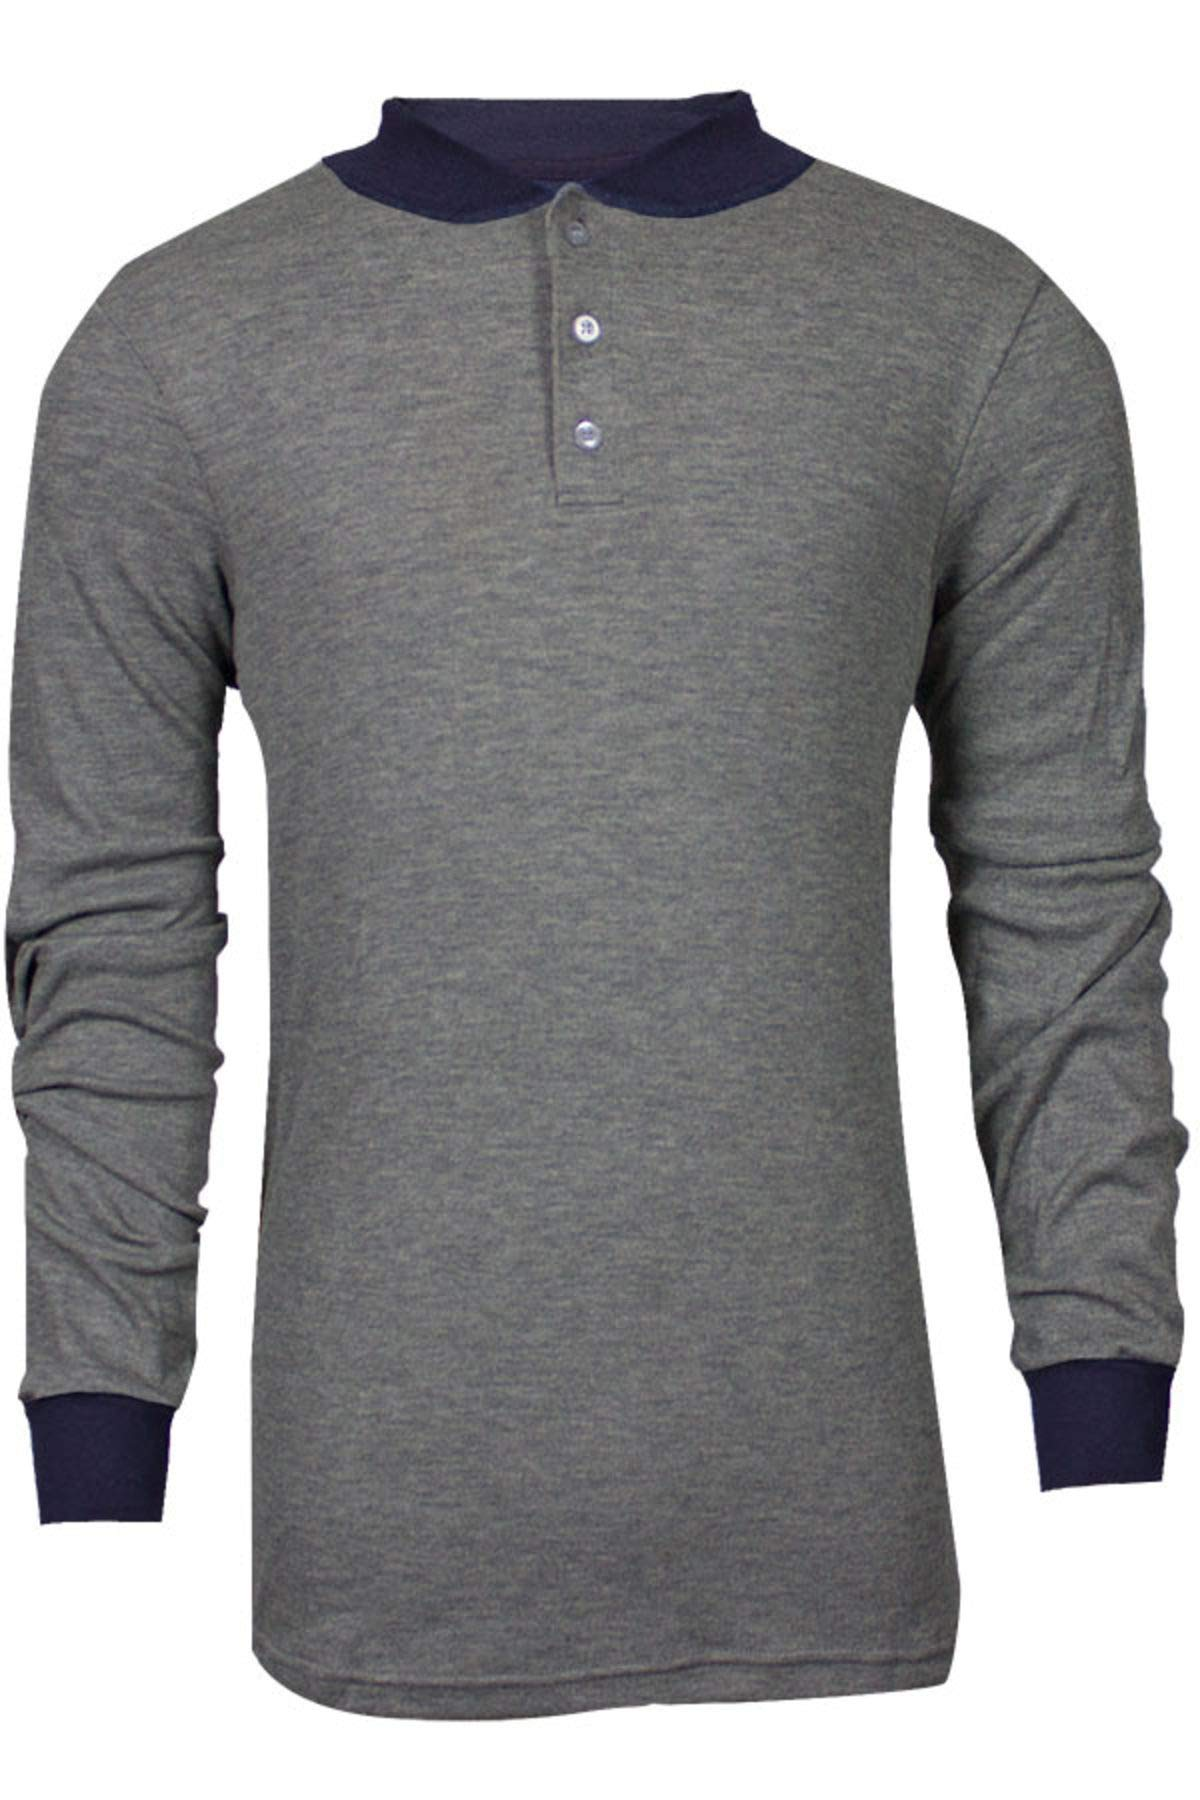 National Safety Apparel C541NGEBSLSMD TECGEN Select Long Sleeve FR Henley, Medium, Grey